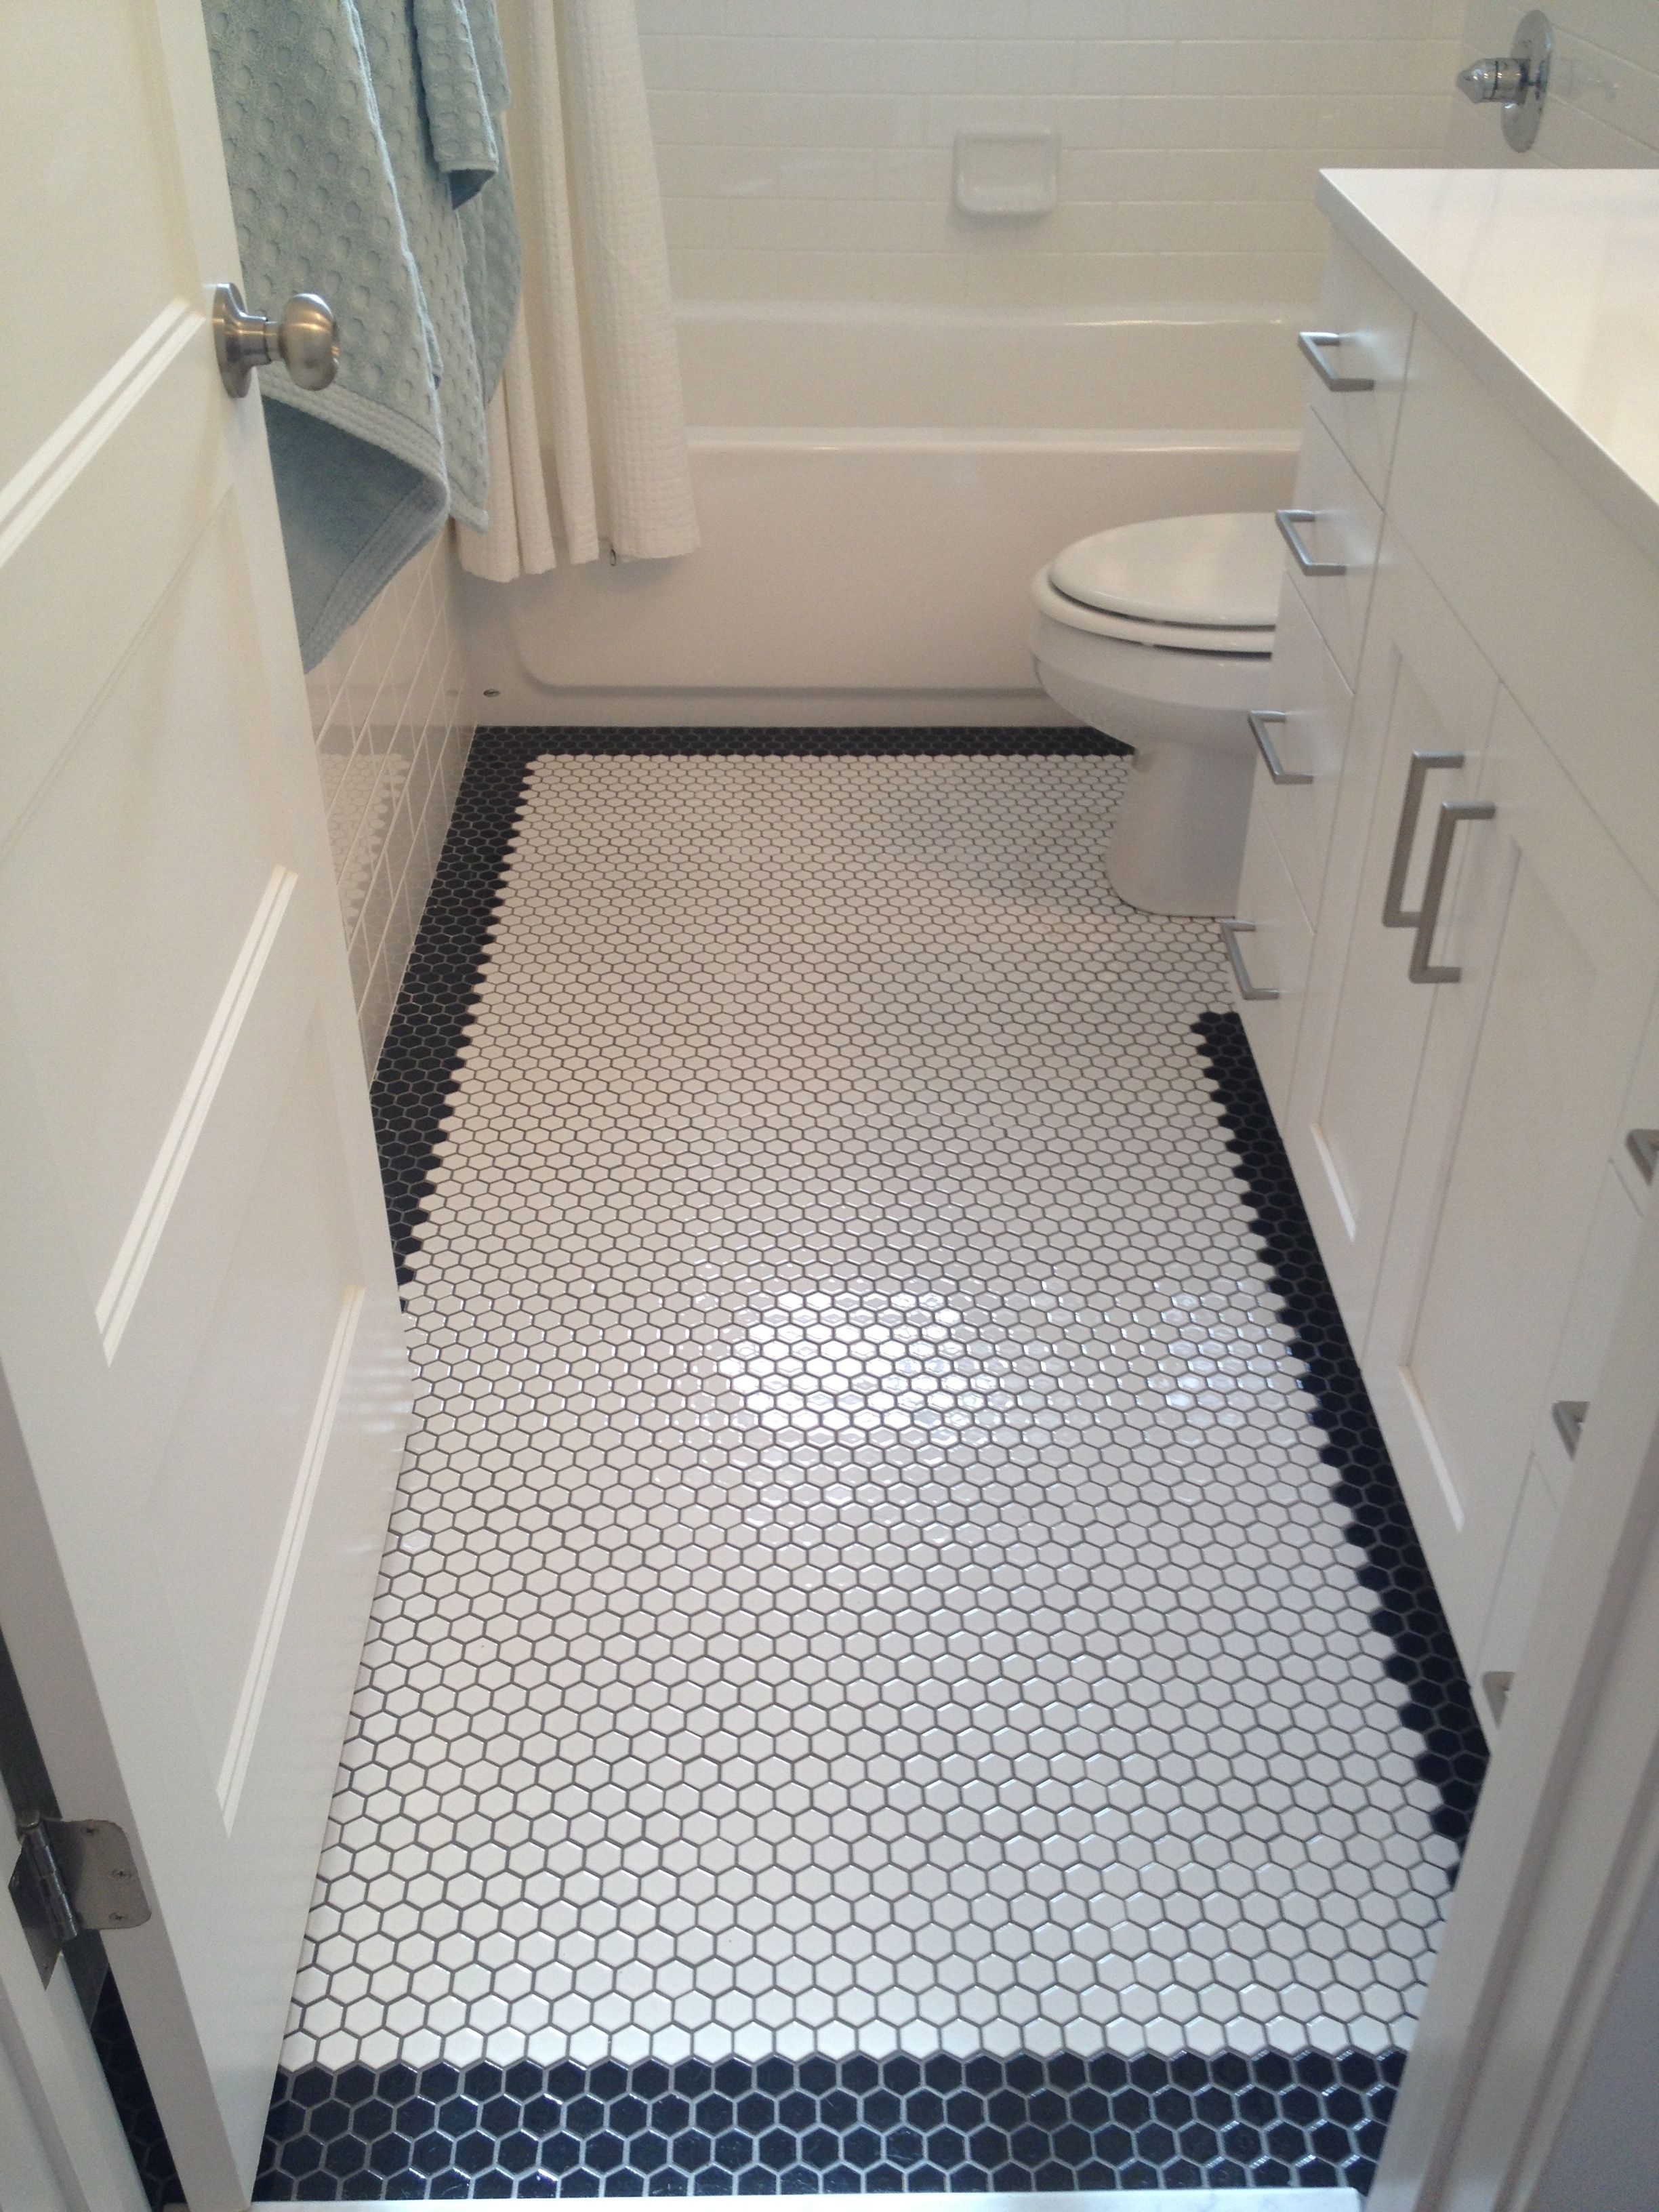 White octagon floor tile with black octagon border